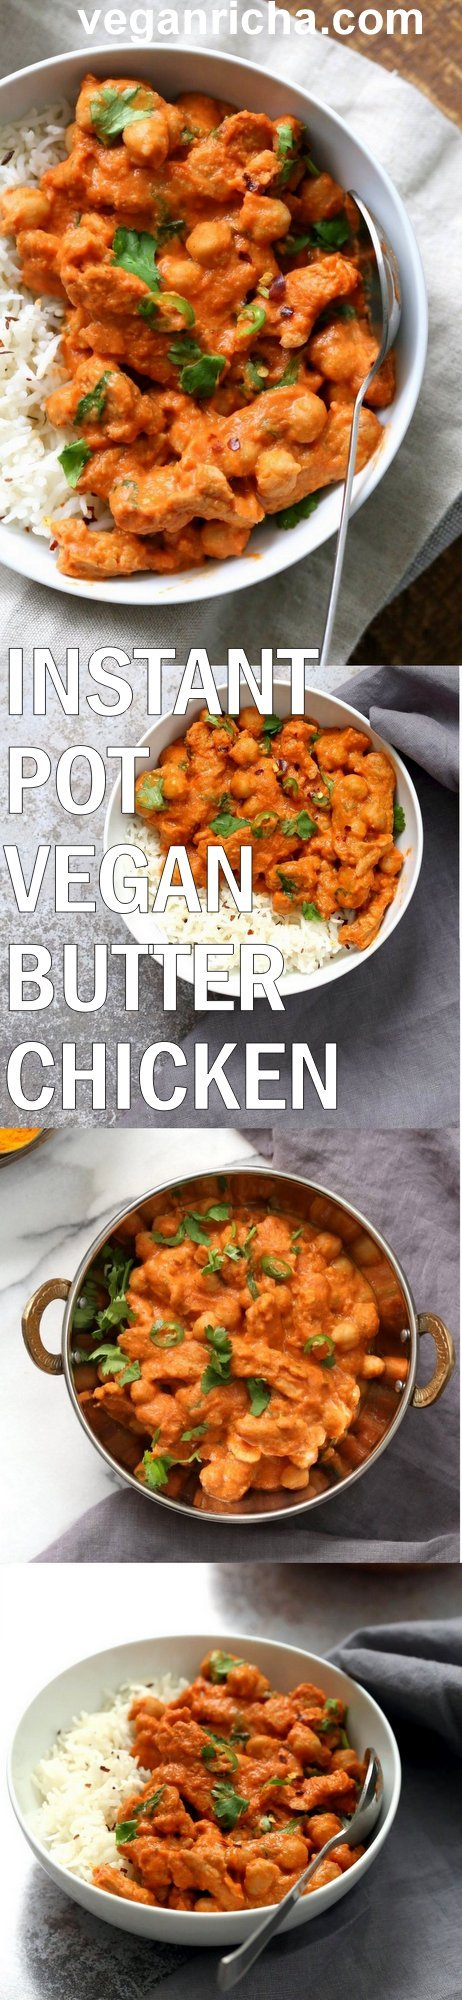 Instant Pot Vegan Butter Chicken with Soycurls and Chickpeas. 15 minute Active time! 1 Pot Creamy Butter Soy Curls. Use all chickpeas for soy-free. Vegan Gluten-free Recipe. Oil-free Nut-free option | VeganRicha.com